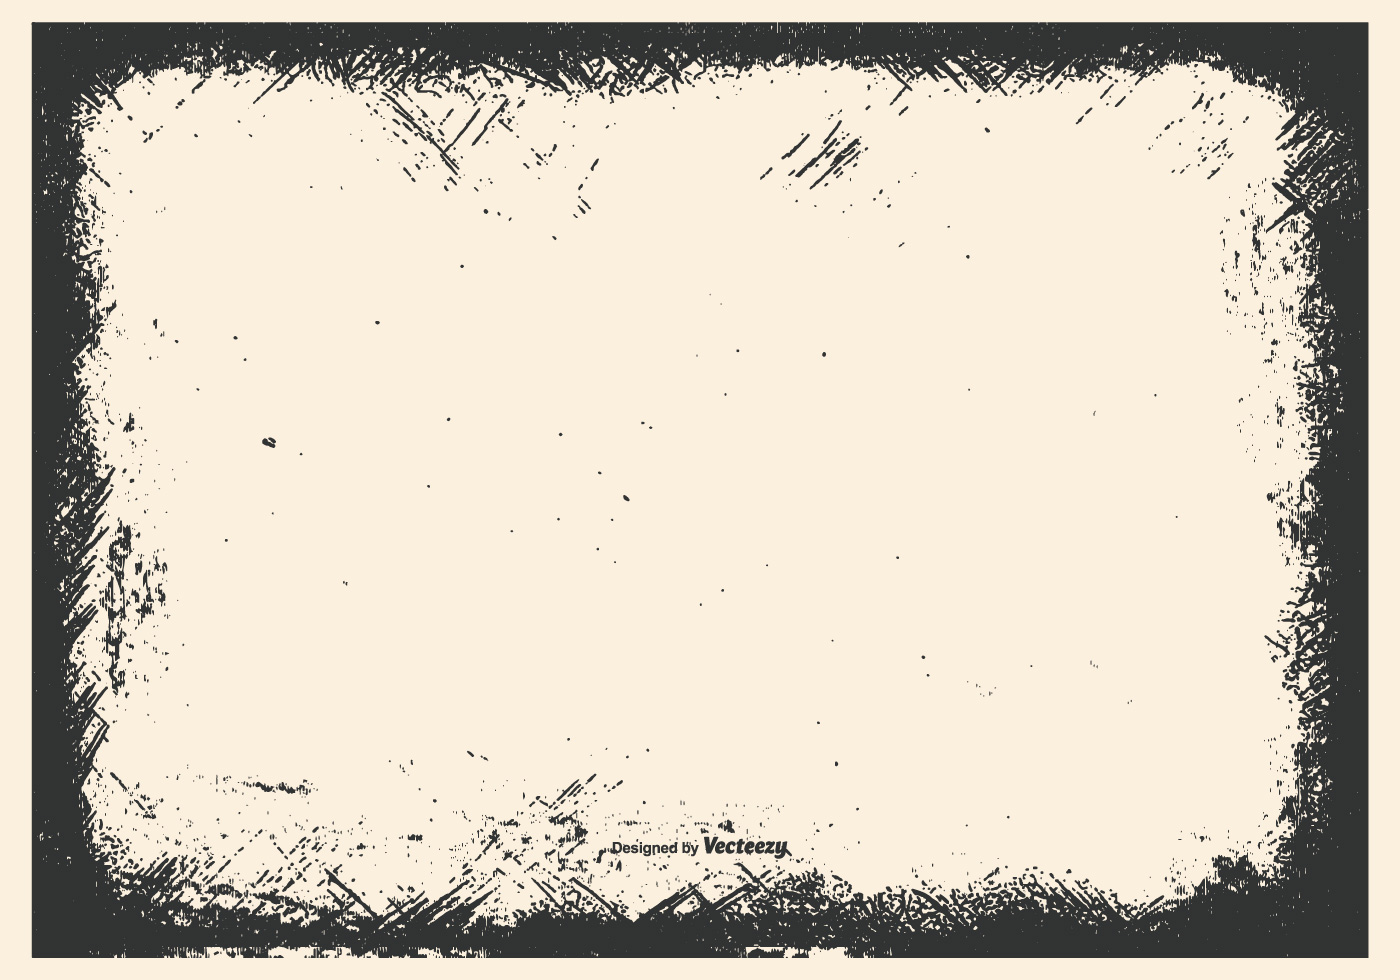 Vector rustic frame clipart picture library library Grunge Border Free Vector Art - (16,303 Free Downloads) picture library library